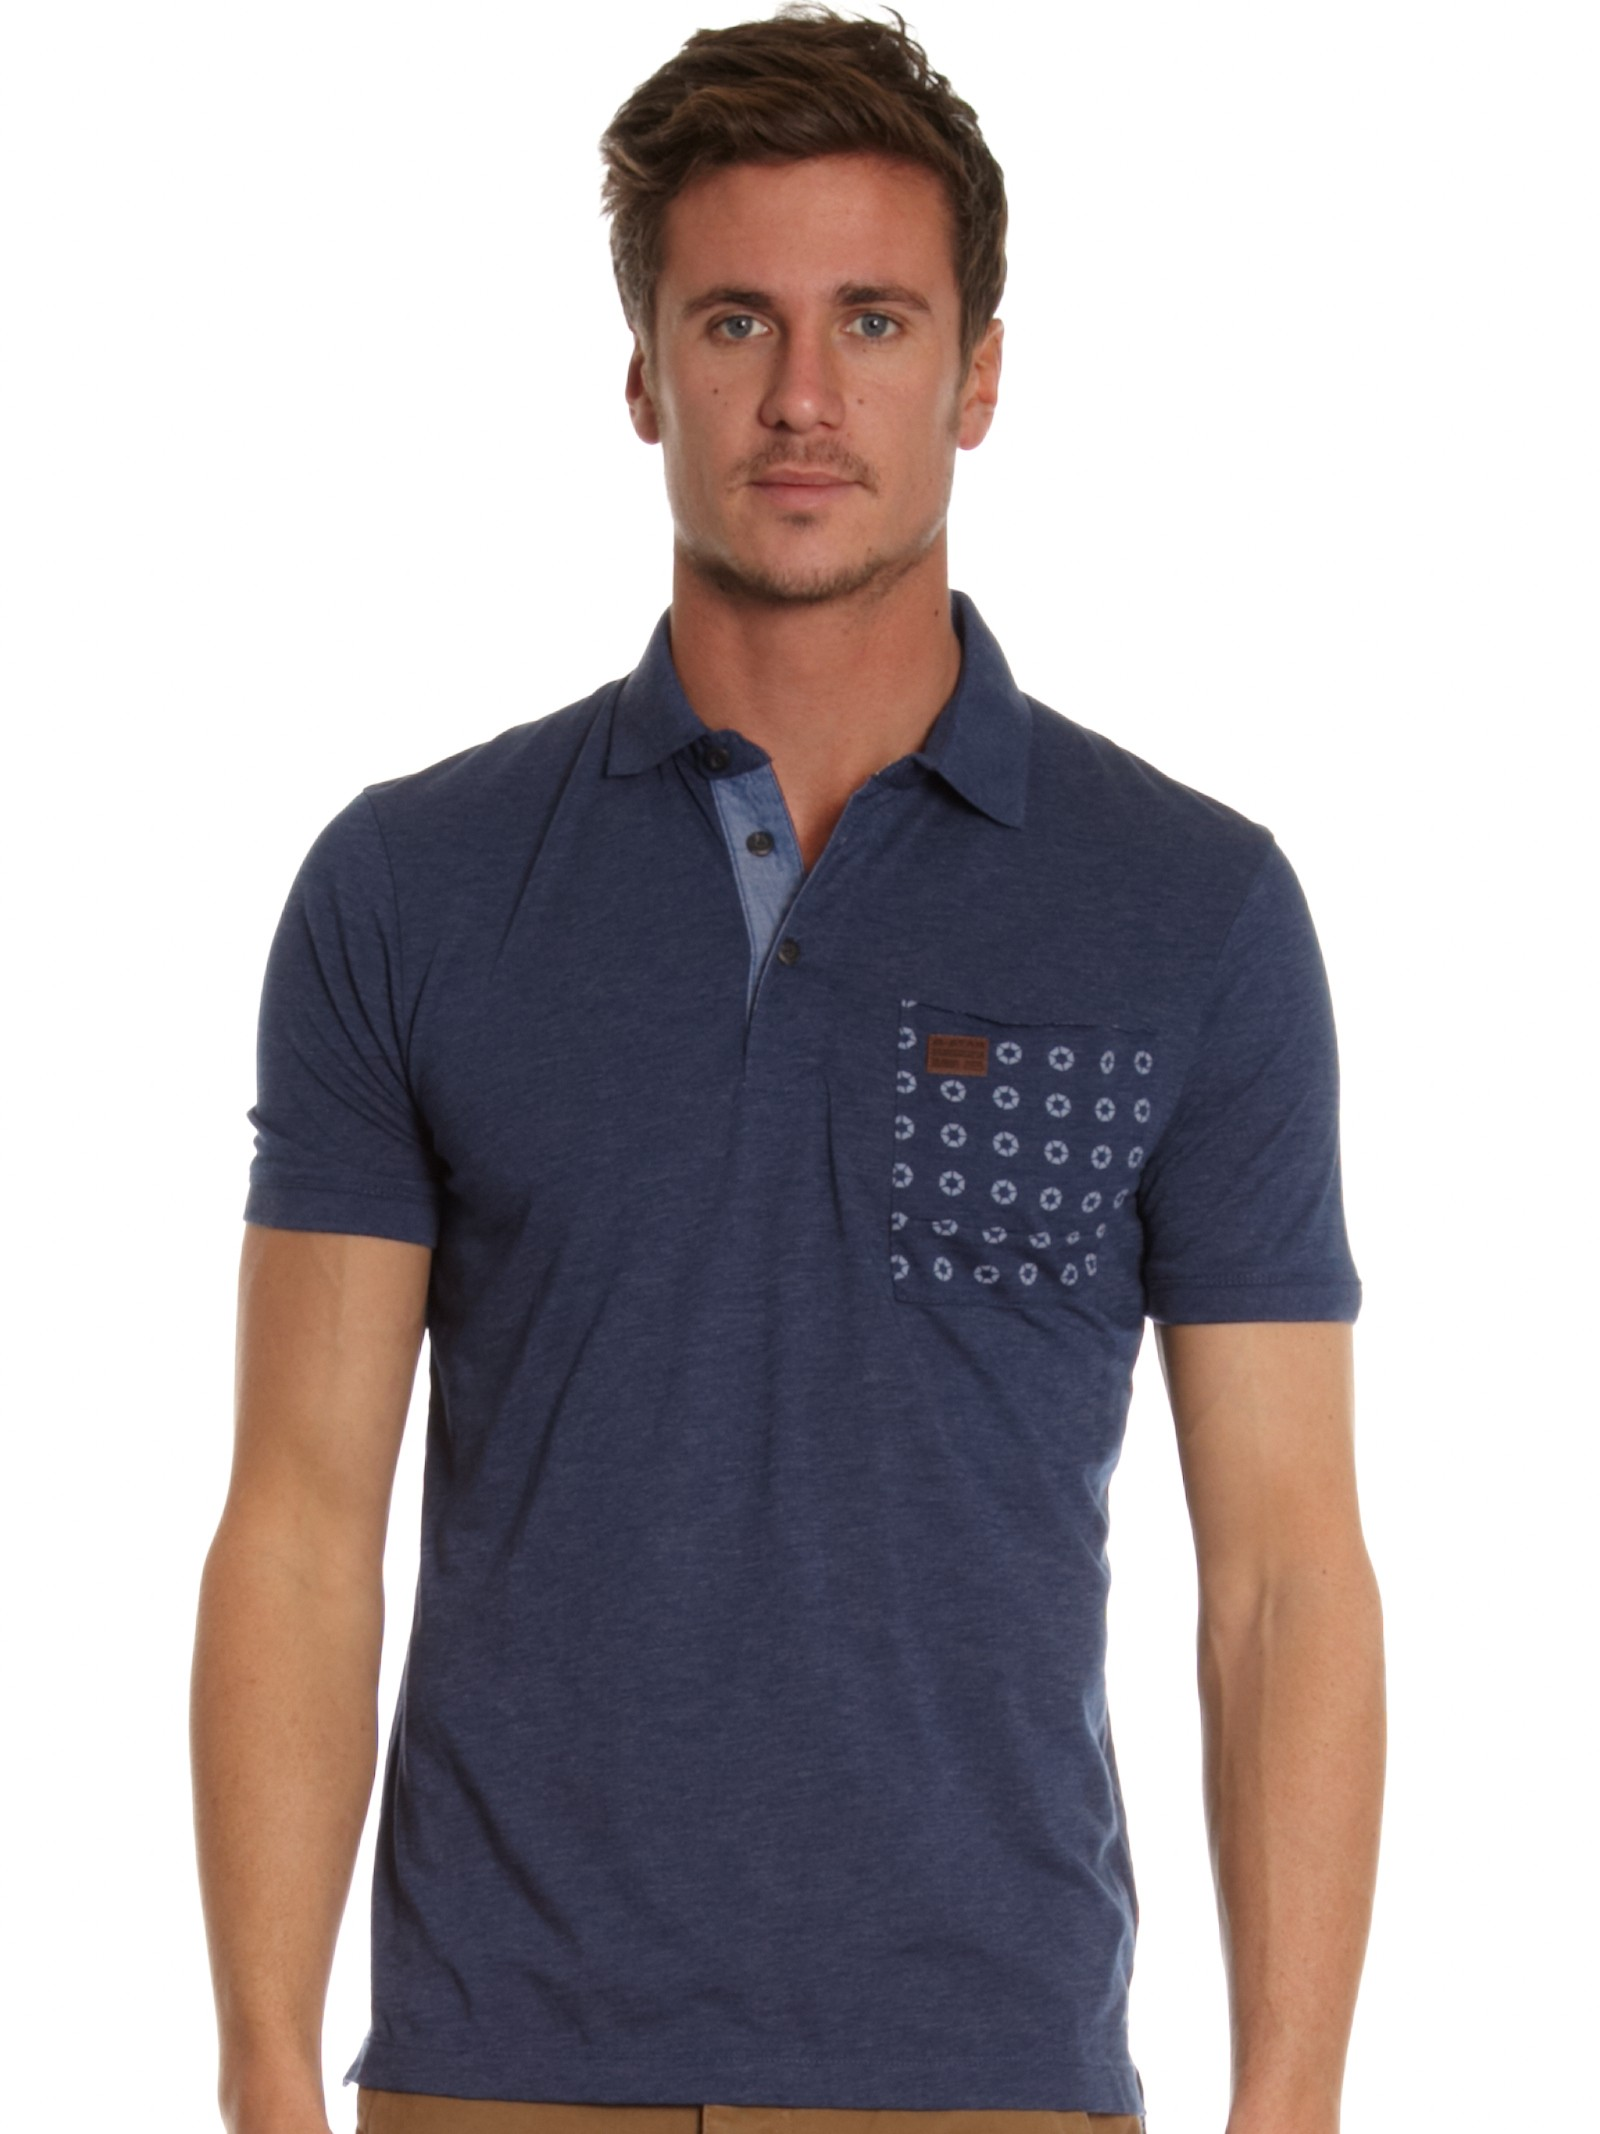 T shirts every man should own wonder wardrobes for Polo t shirts with pocket online